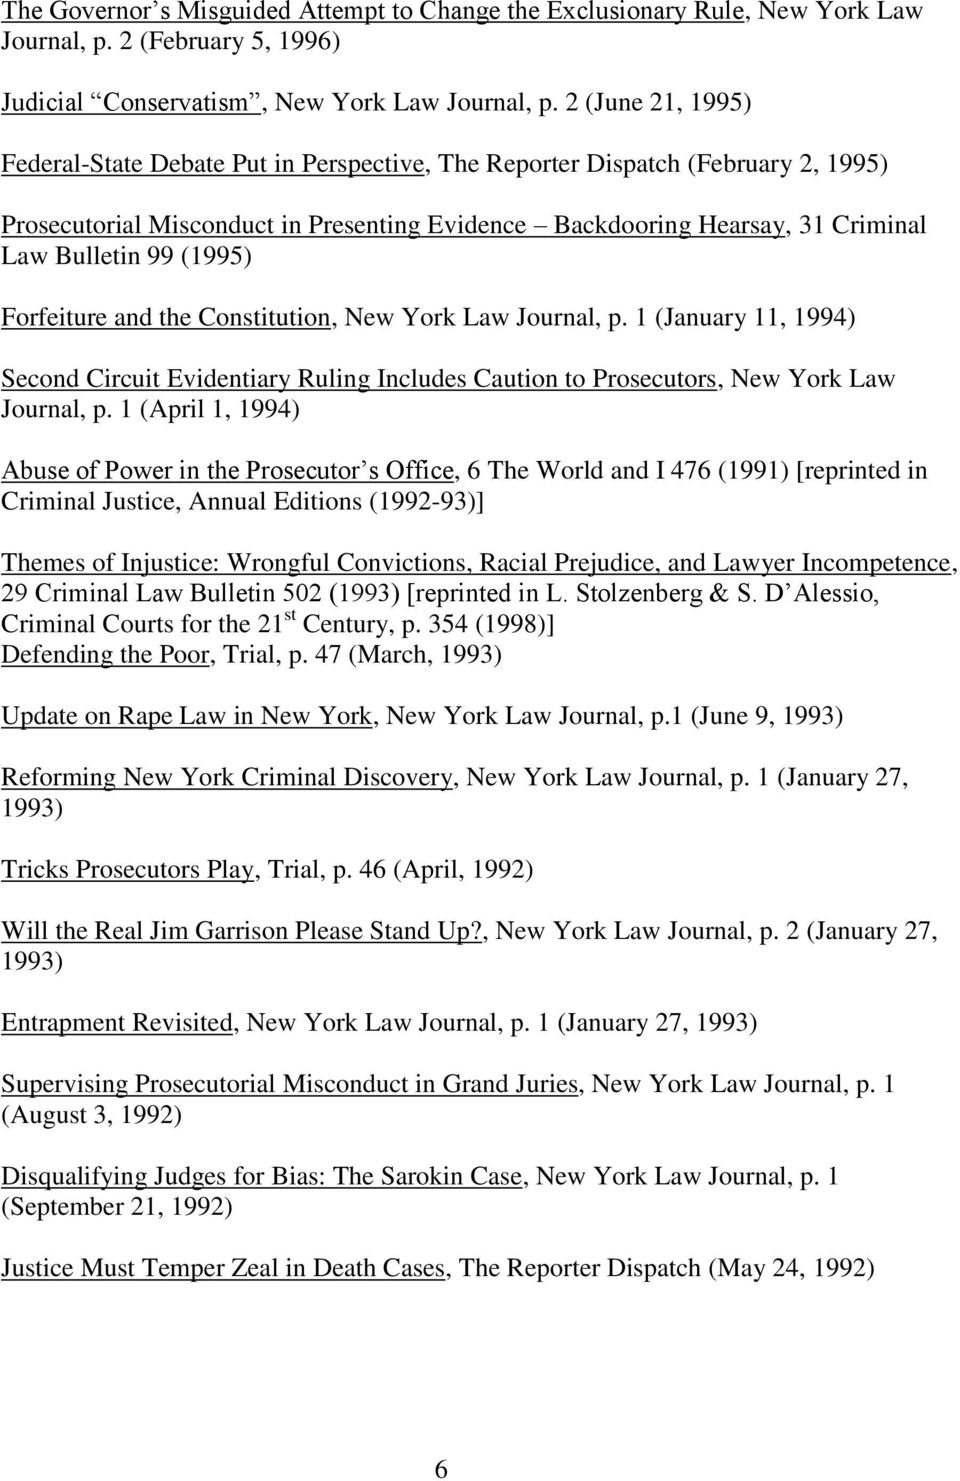 (1995) Forfeiture and the Constitution, New York Law Journal, p. 1 (January 11, 1994) Second Circuit Evidentiary Ruling Includes Caution to Prosecutors, New York Law Journal, p.